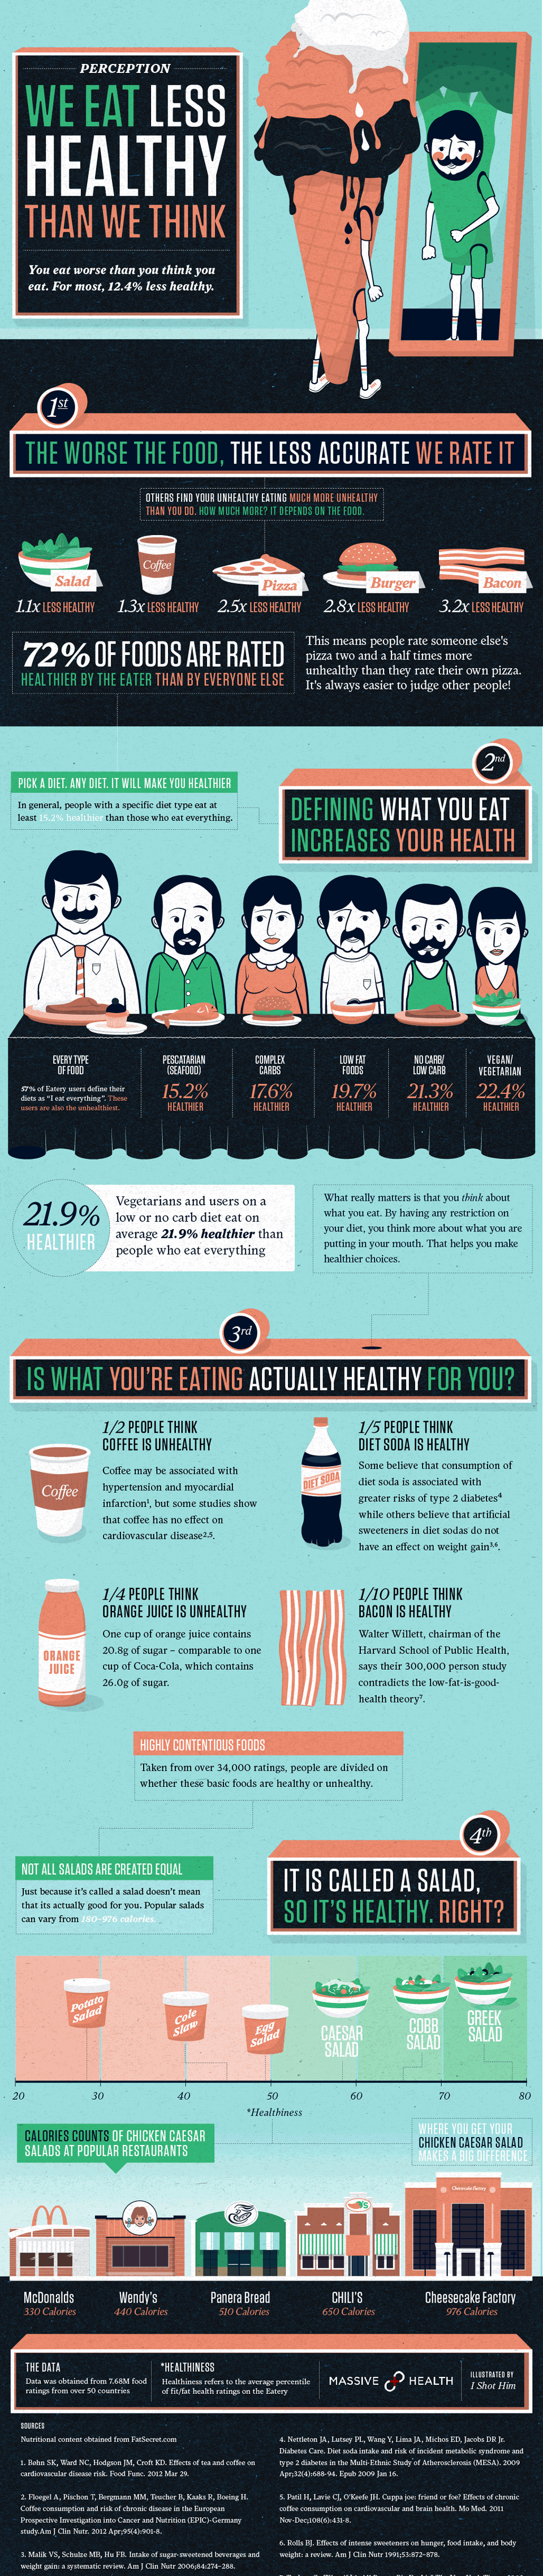 We Eat Less Healthy Than We Think